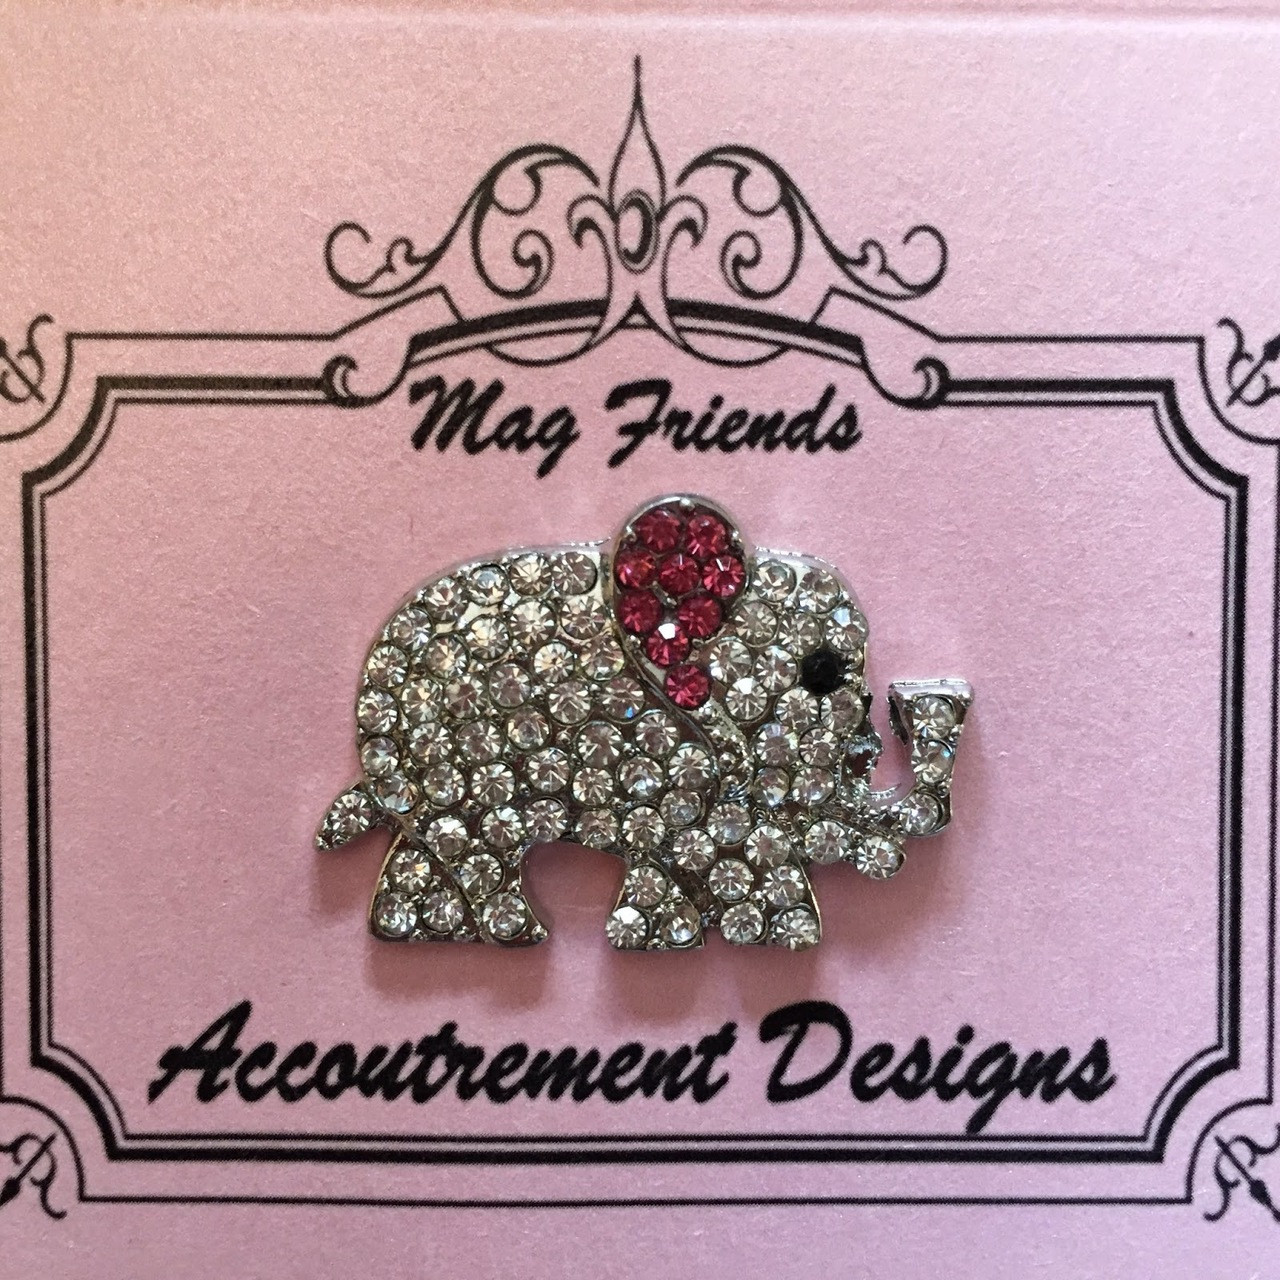 ed965f75f9c Elephant Clear Needle Minder Magnet Glamorous Accoutrement Designs - The  NeedleArt Closet